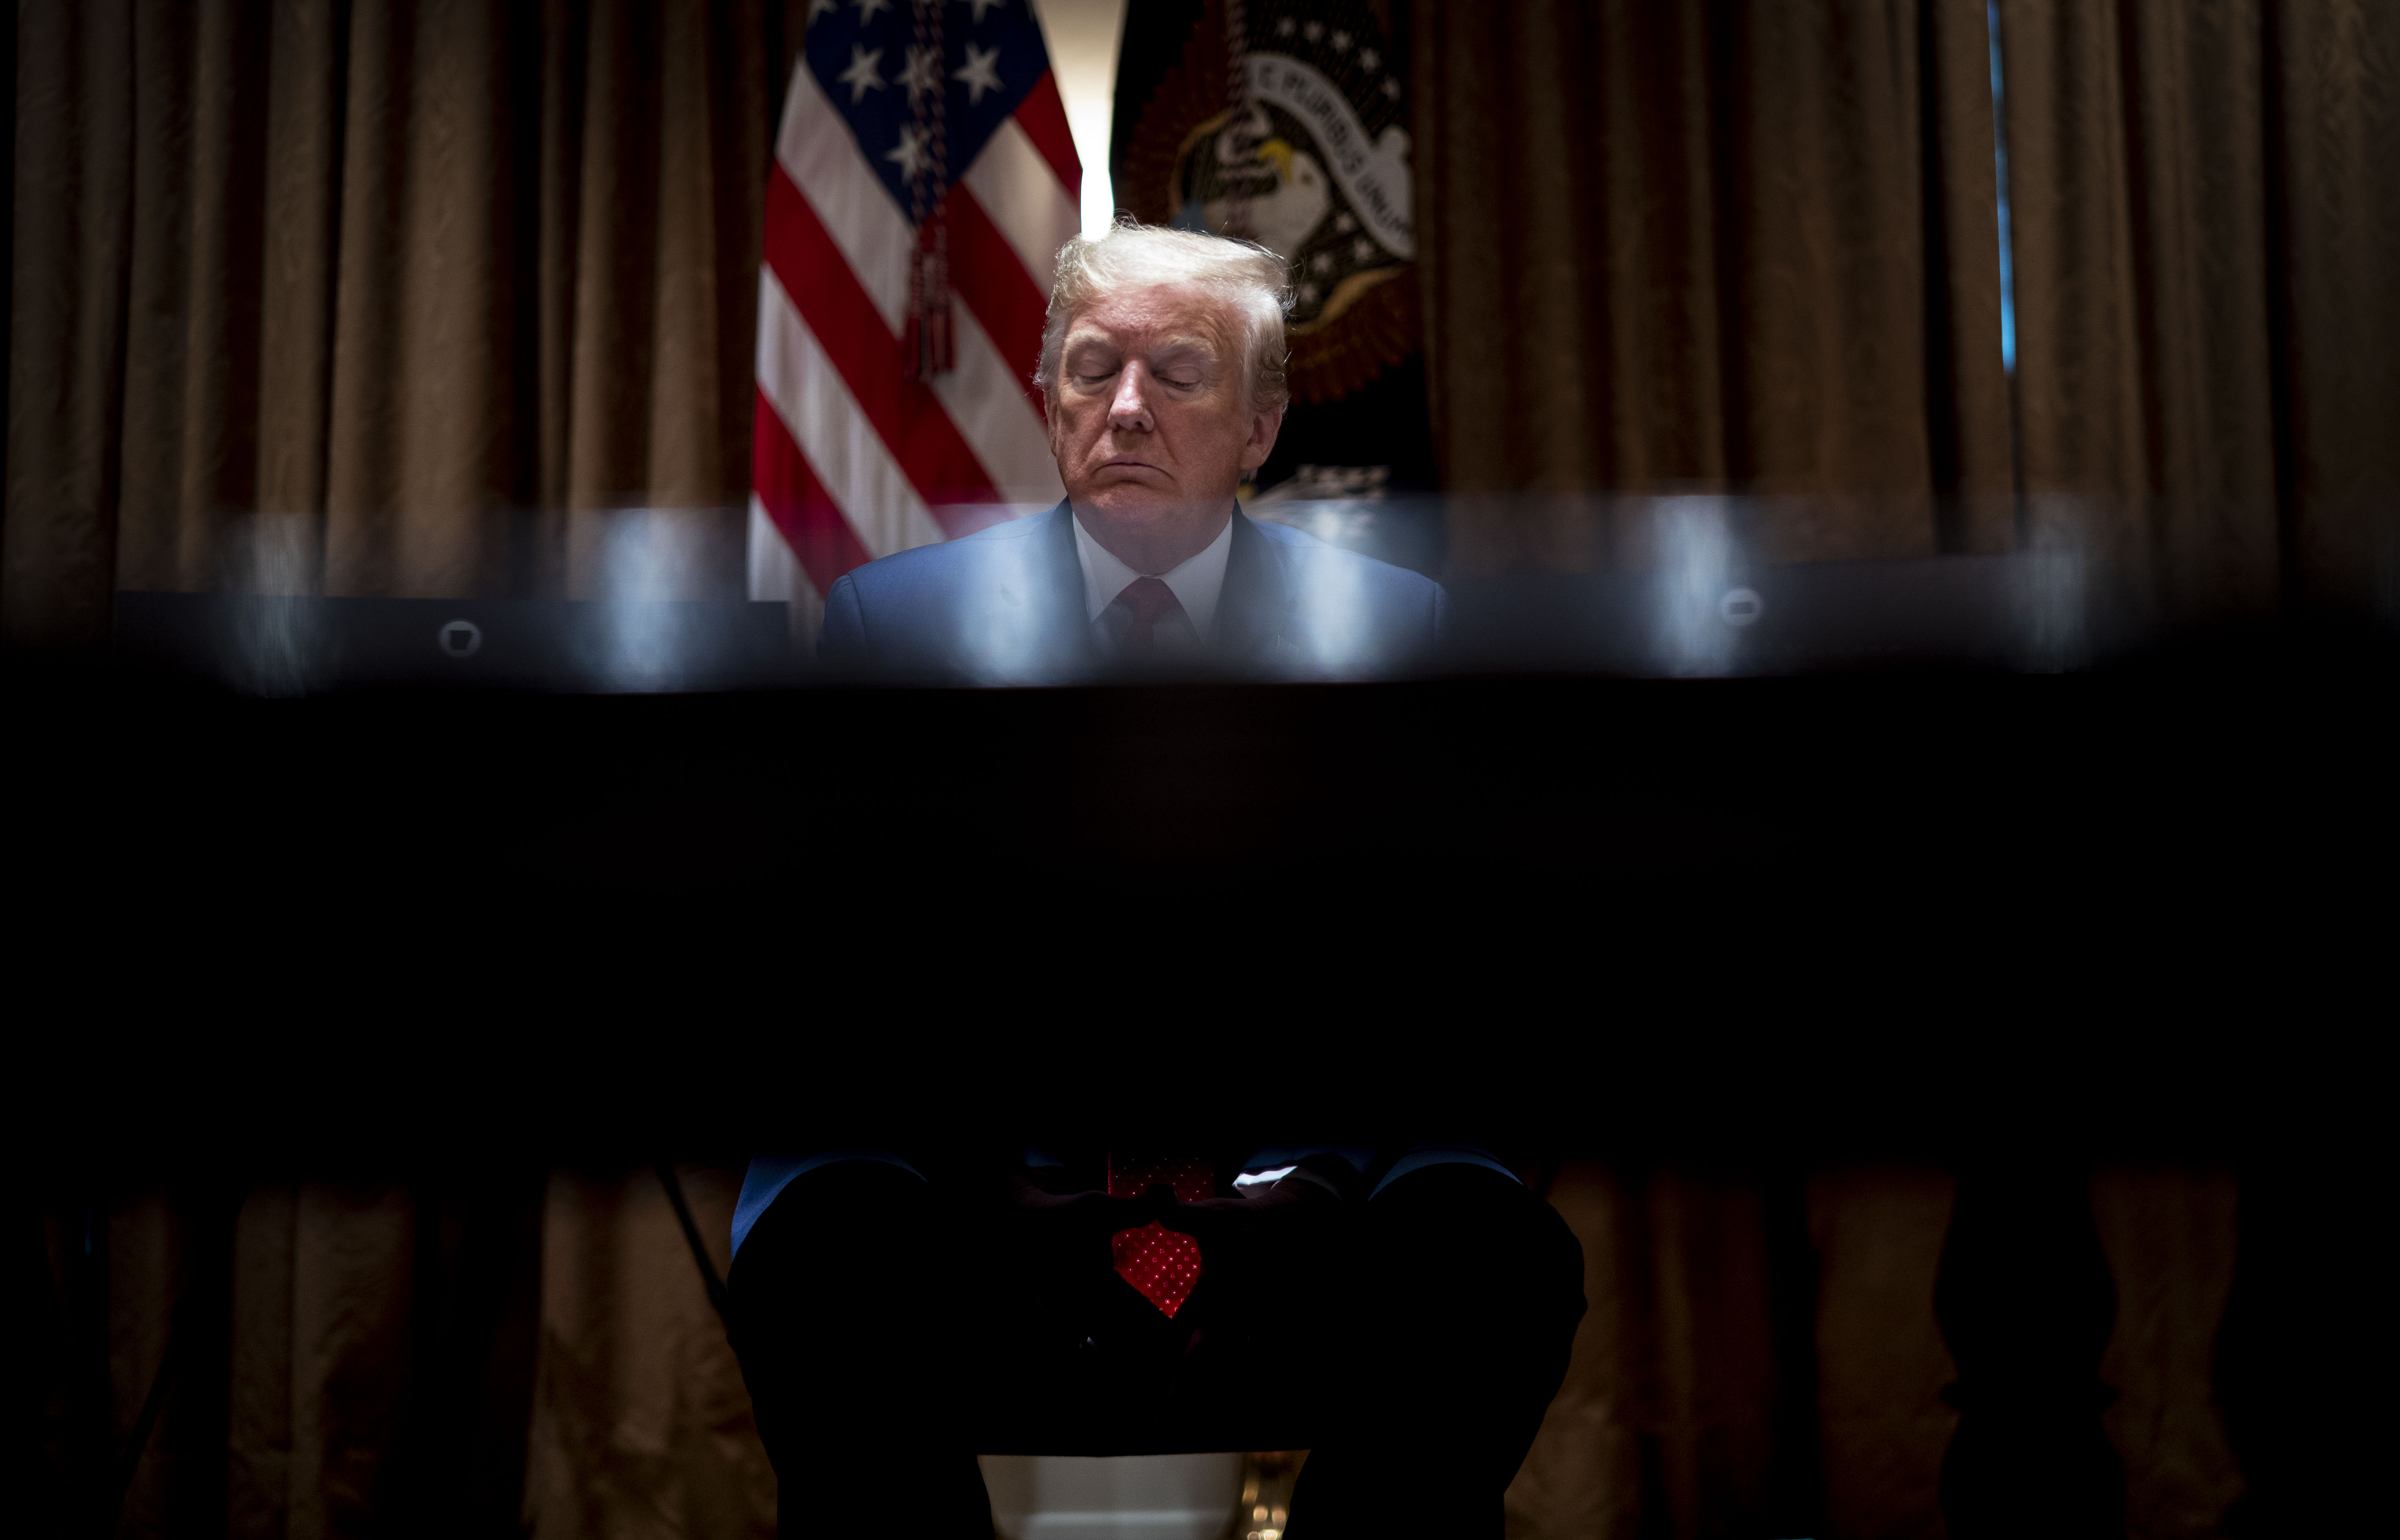 WASHINGTON, DC - MAY 20: U.S. President Donald Trump pauses during a meeting with the Arkansas Governor Asa Hutchinson and Kansas Governor Laura Kelly in the Cabinet Room of the White House May 20, 2020 in Washington, DC. (Photo by Doug Mills-Pool/Getty Images)